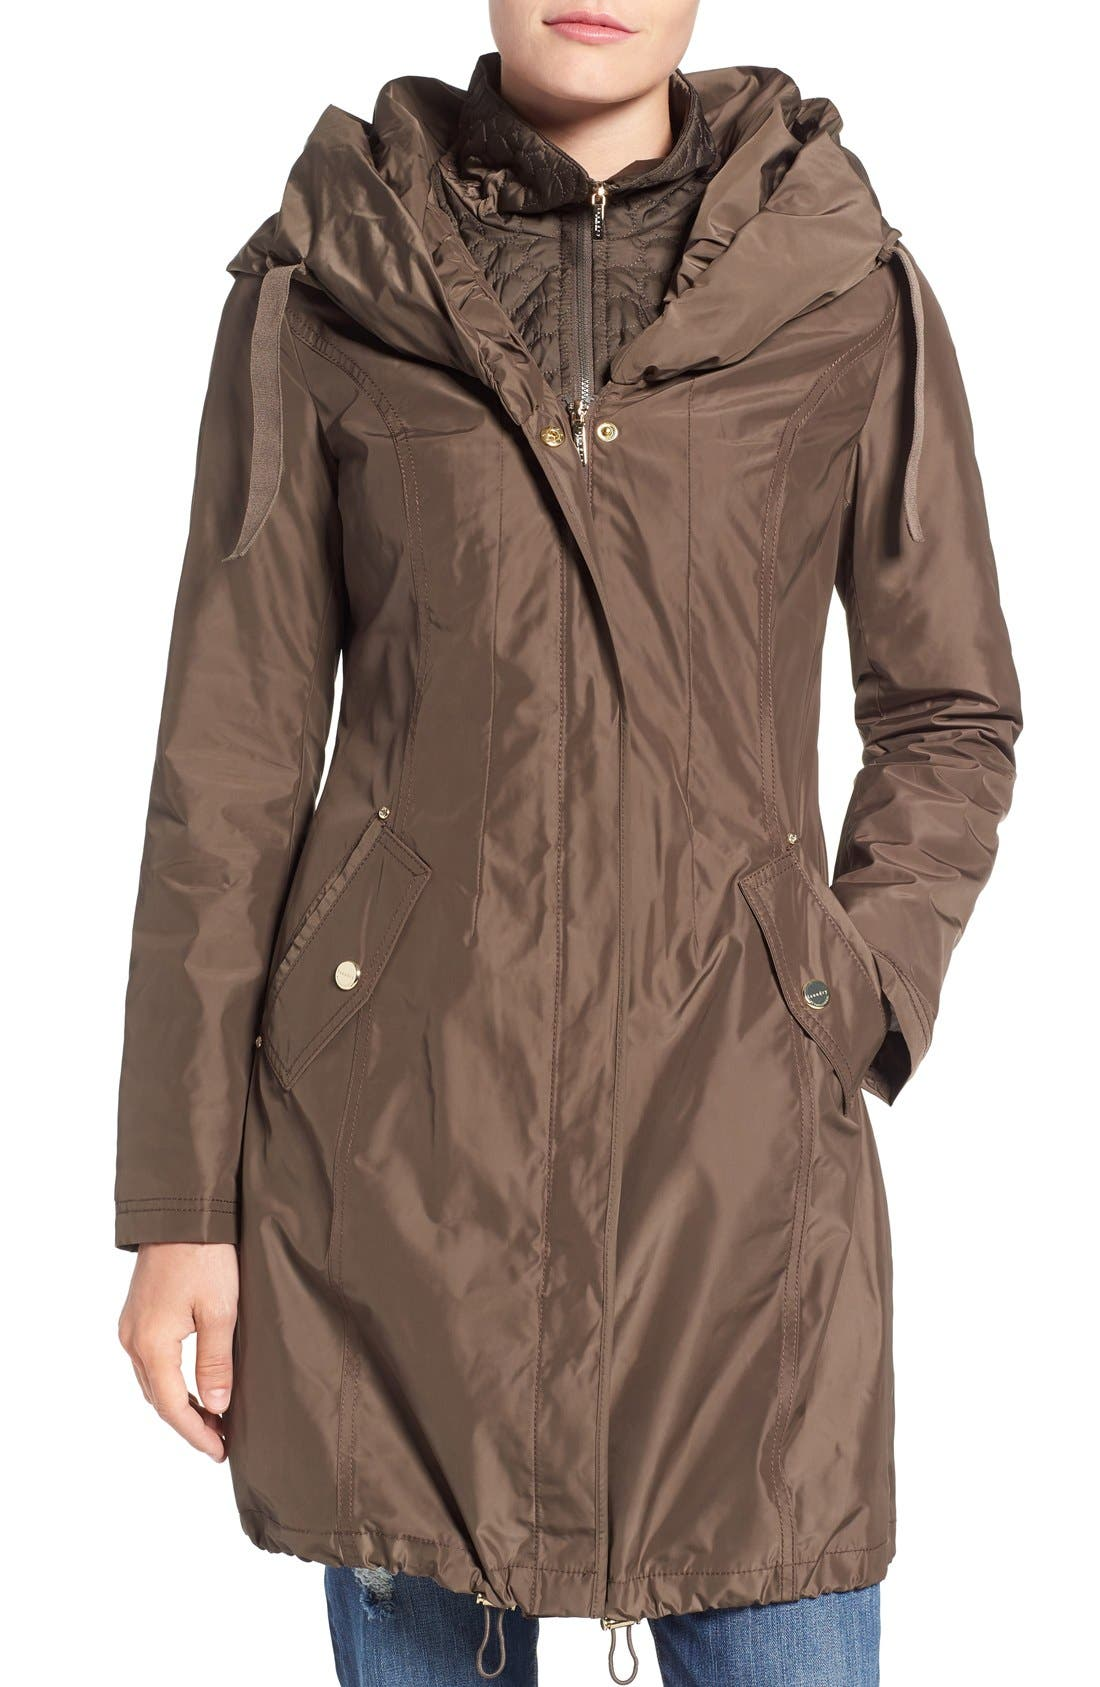 Main Image - Laundry by Shelli Segal Pillow Collar Raincoat with Detachable Quilted Hooded Bib Insert (Regular & Petite)